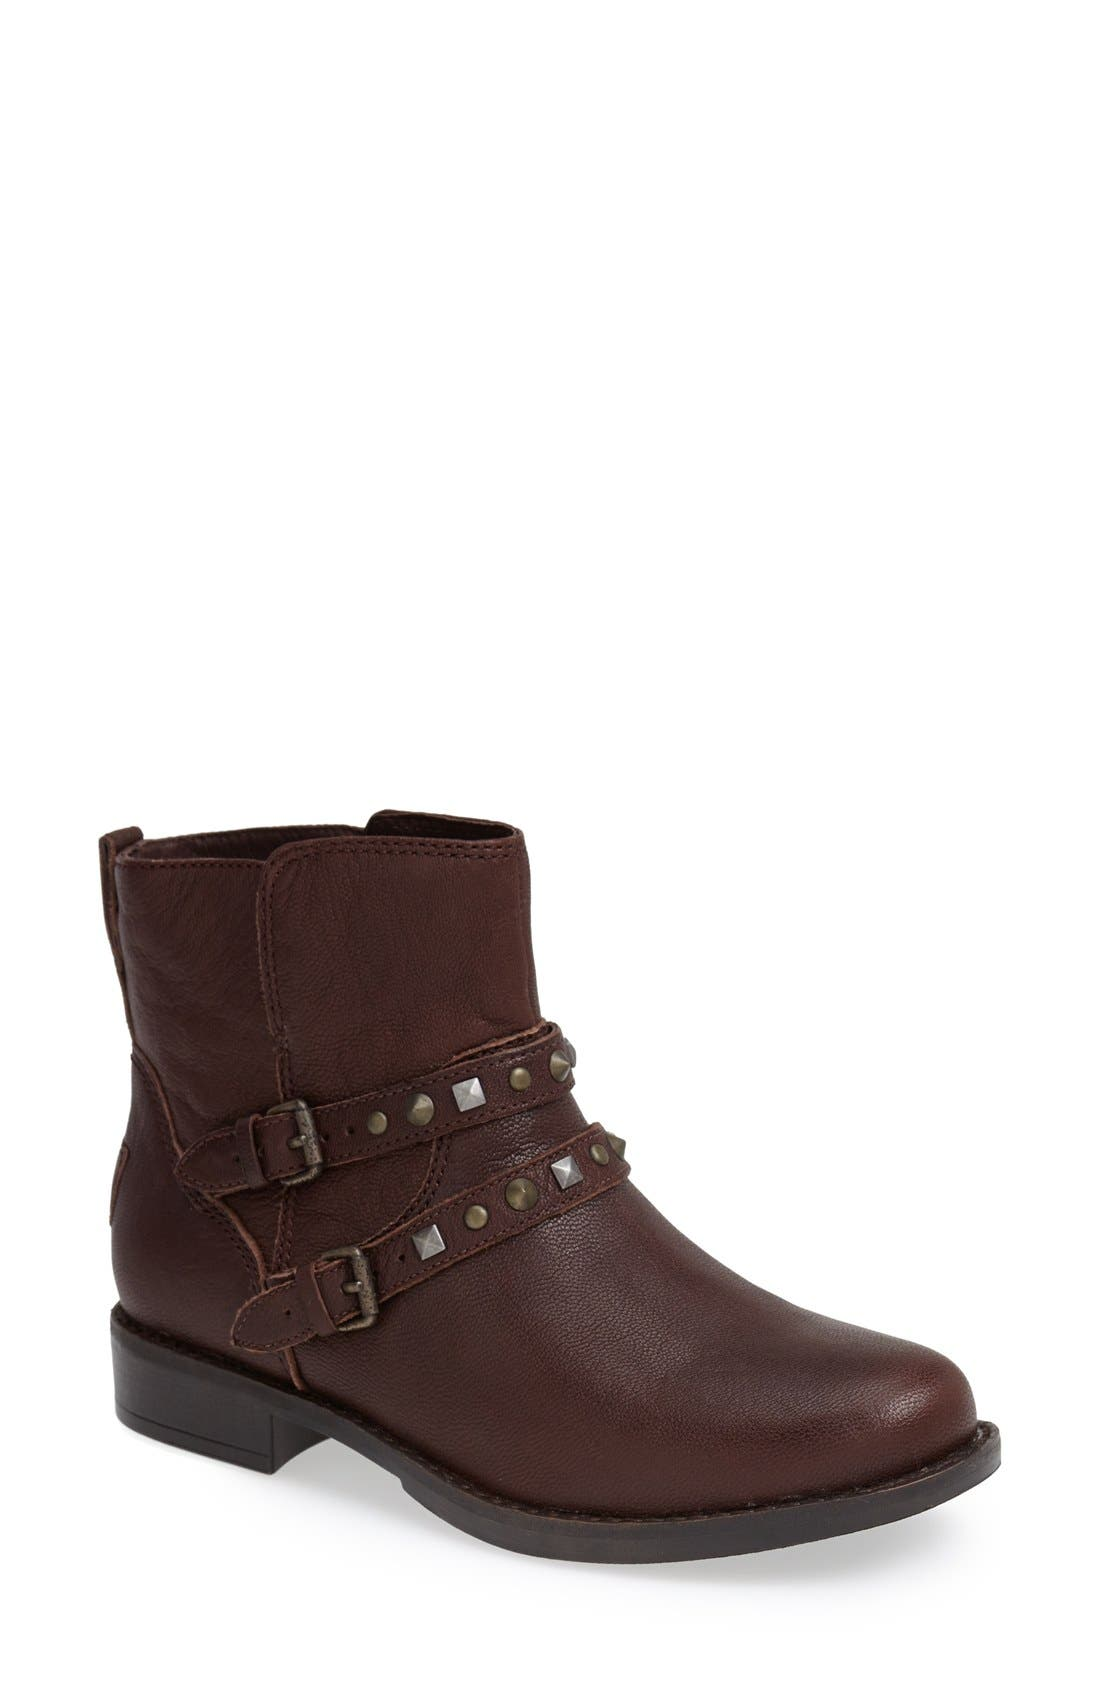 Alternate Image 1 Selected - UGG W CAMILE BOOT